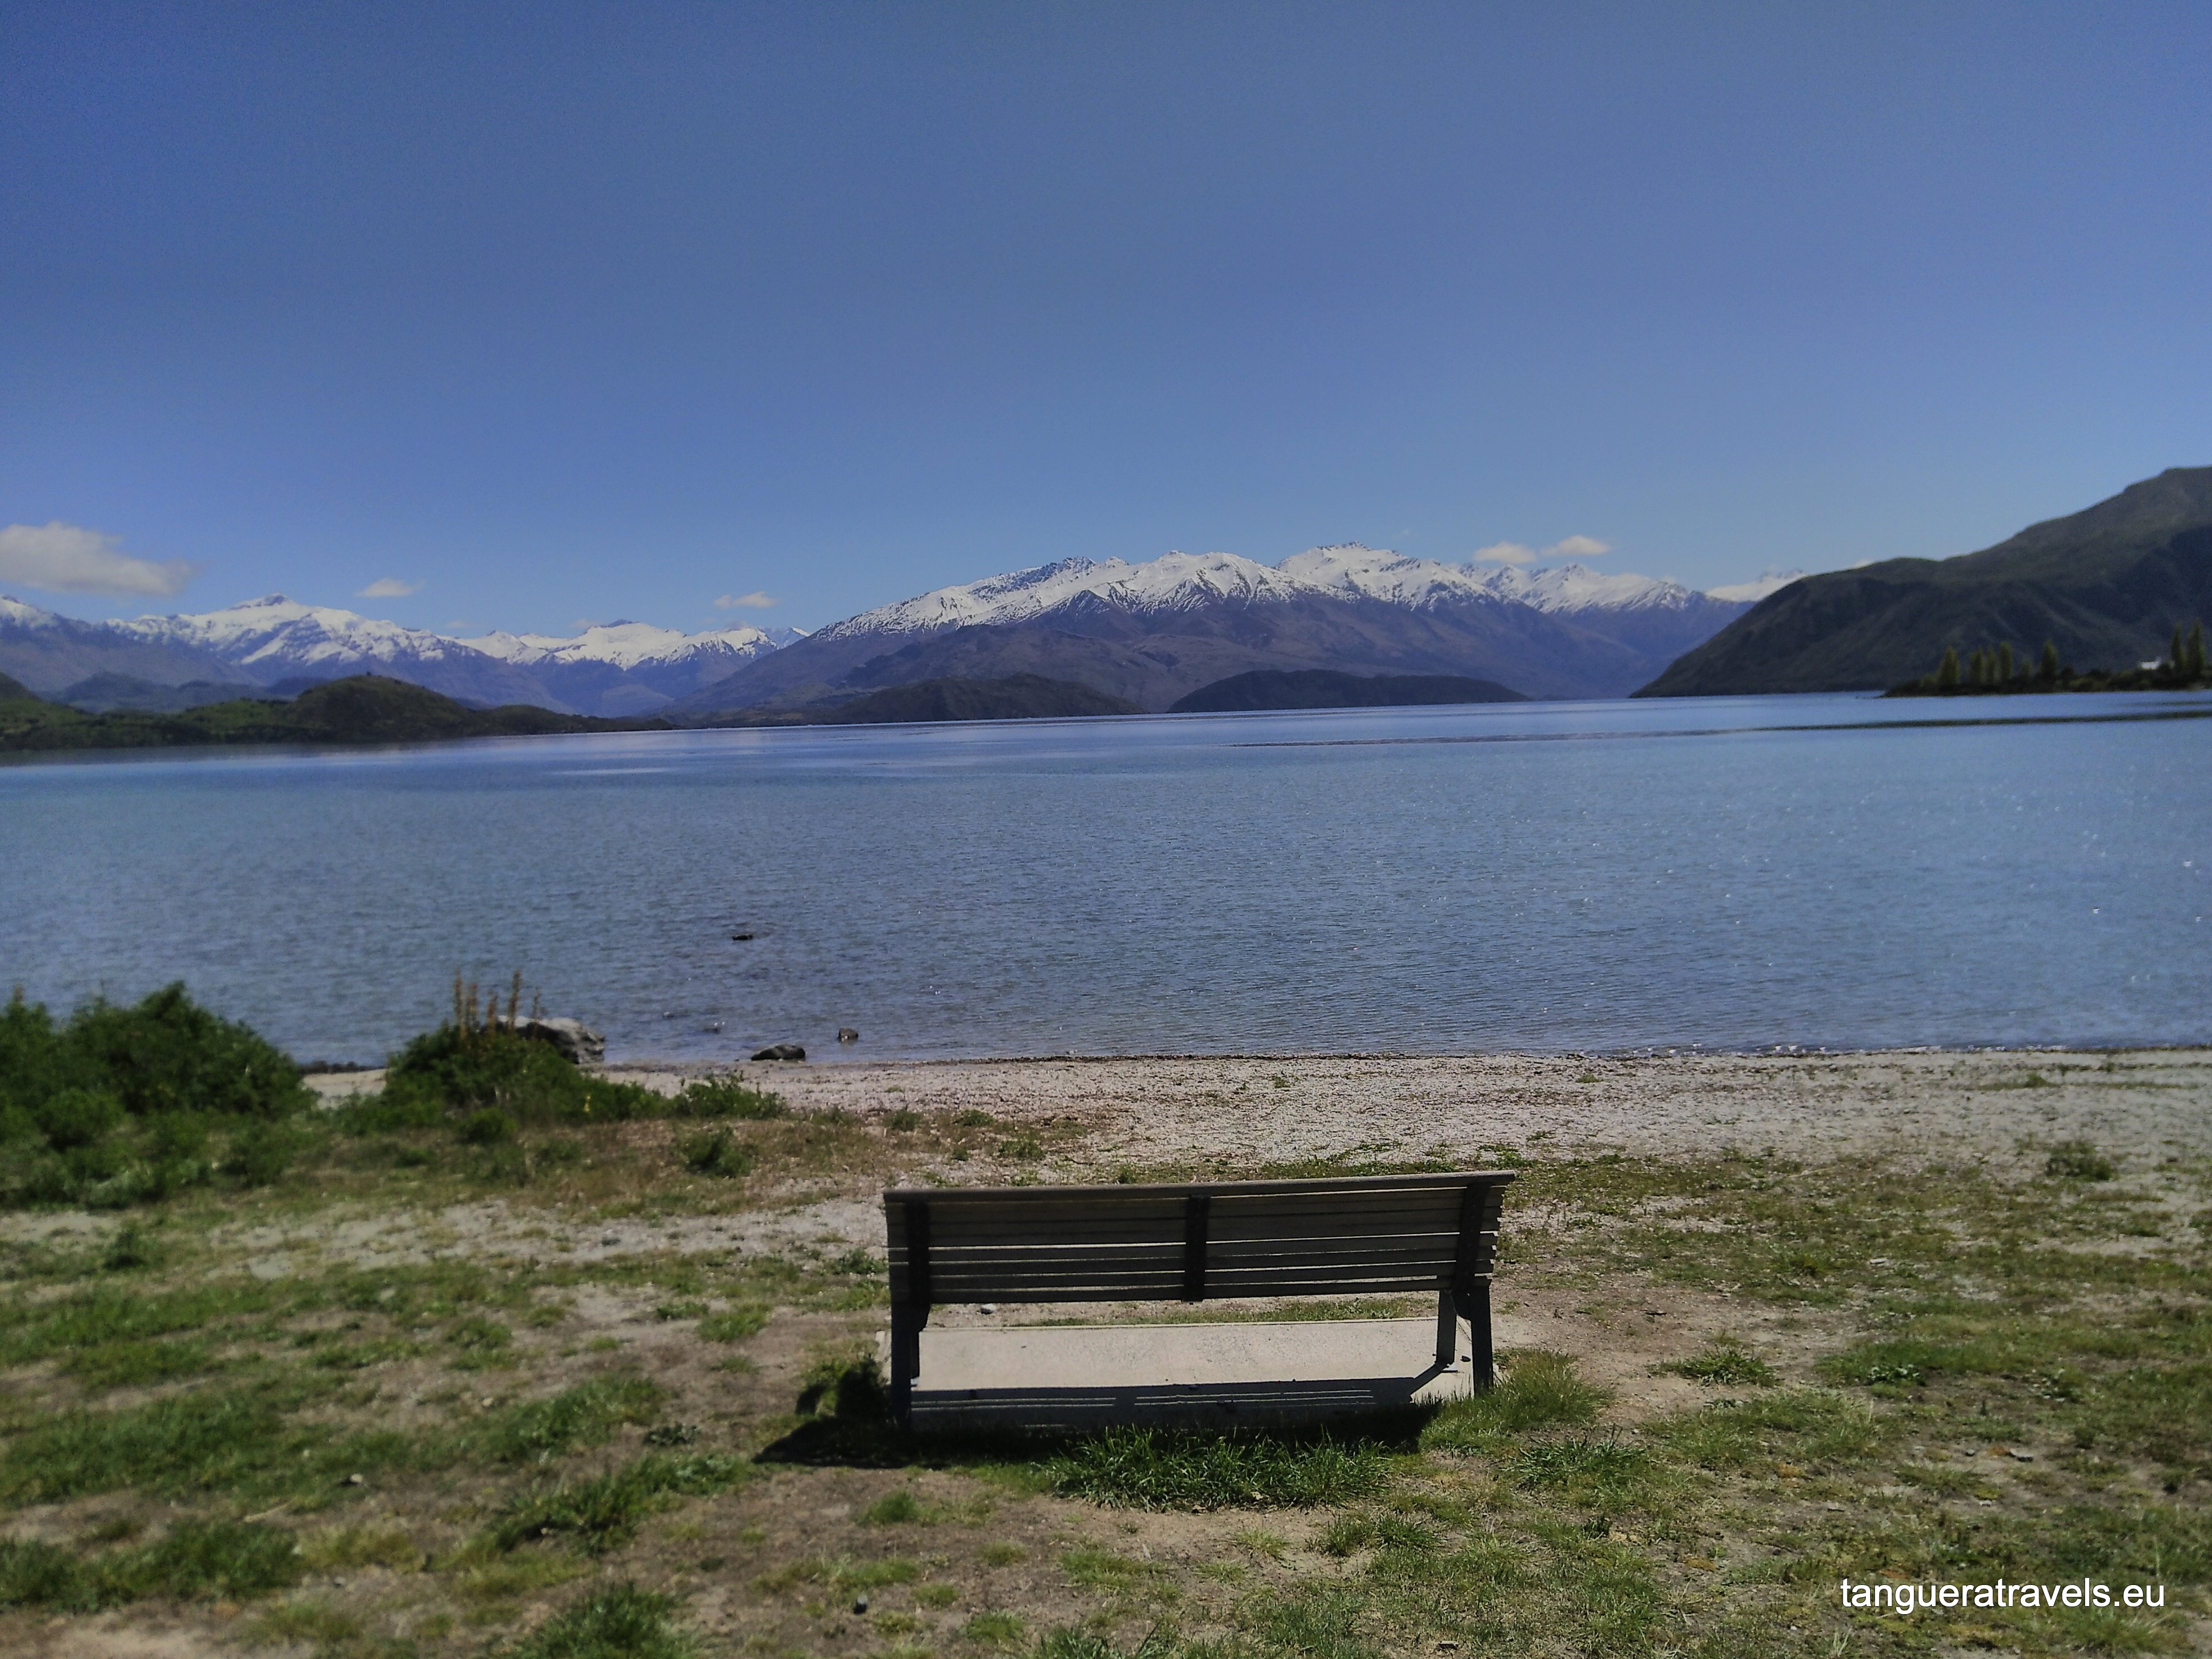 Bremner Bay via Eely point, Wanaka